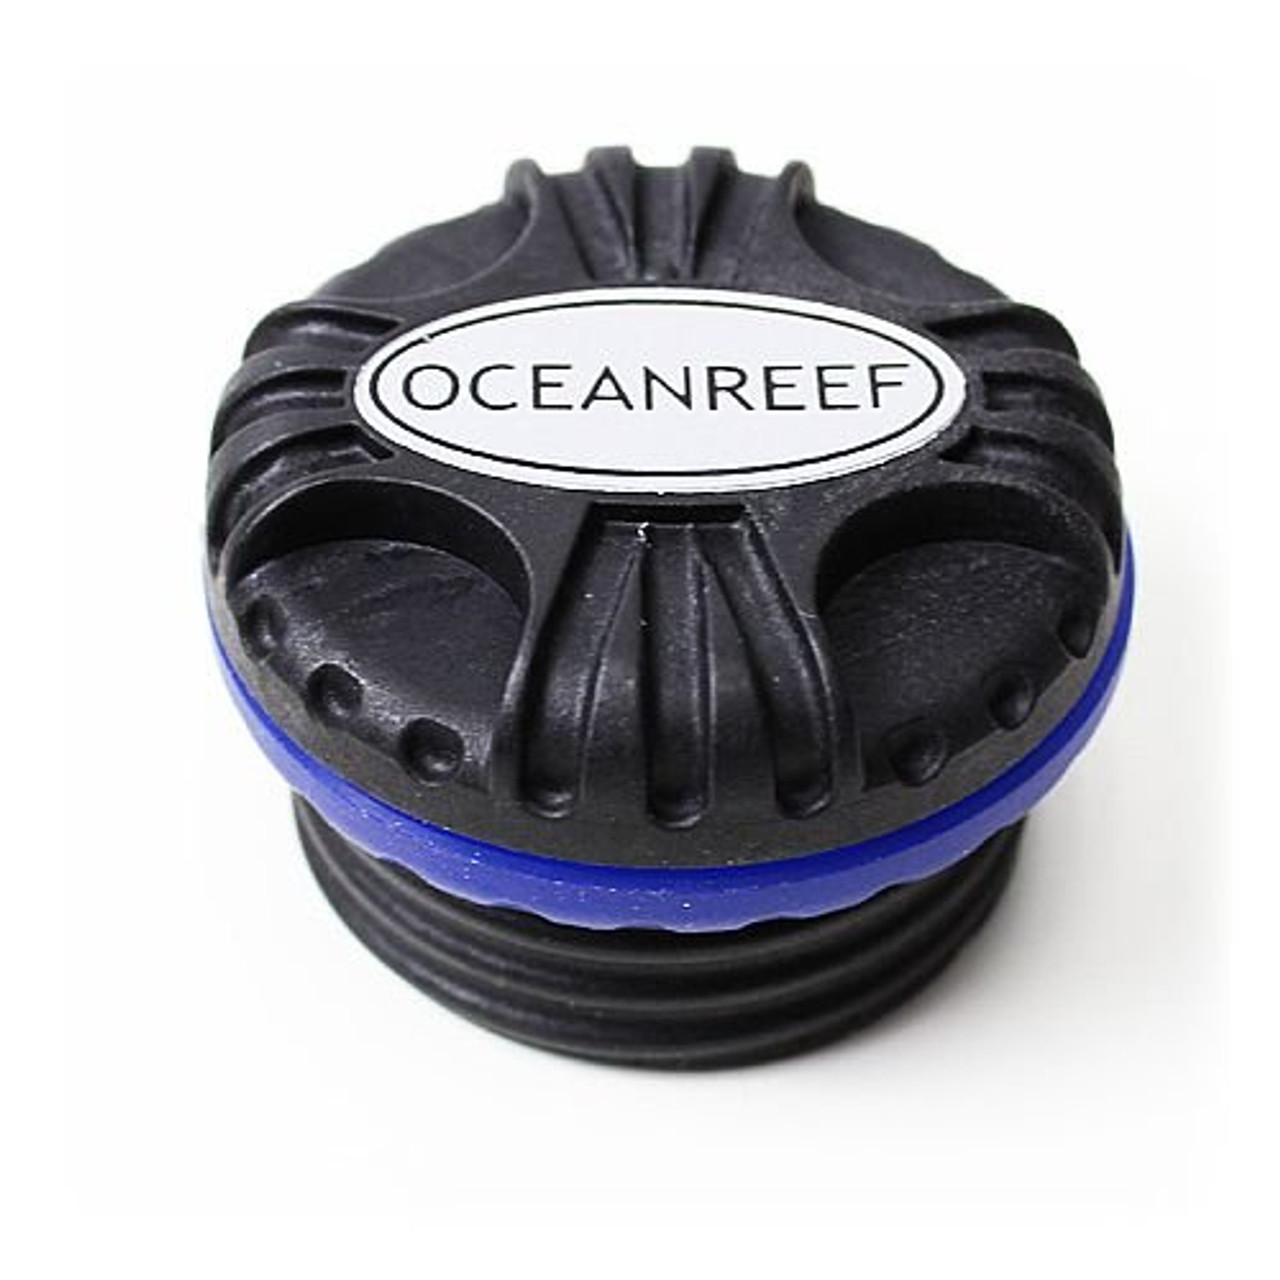 Ocean Reef Neptune Space G.divers Full Face Diving Mask Surface Air Valve